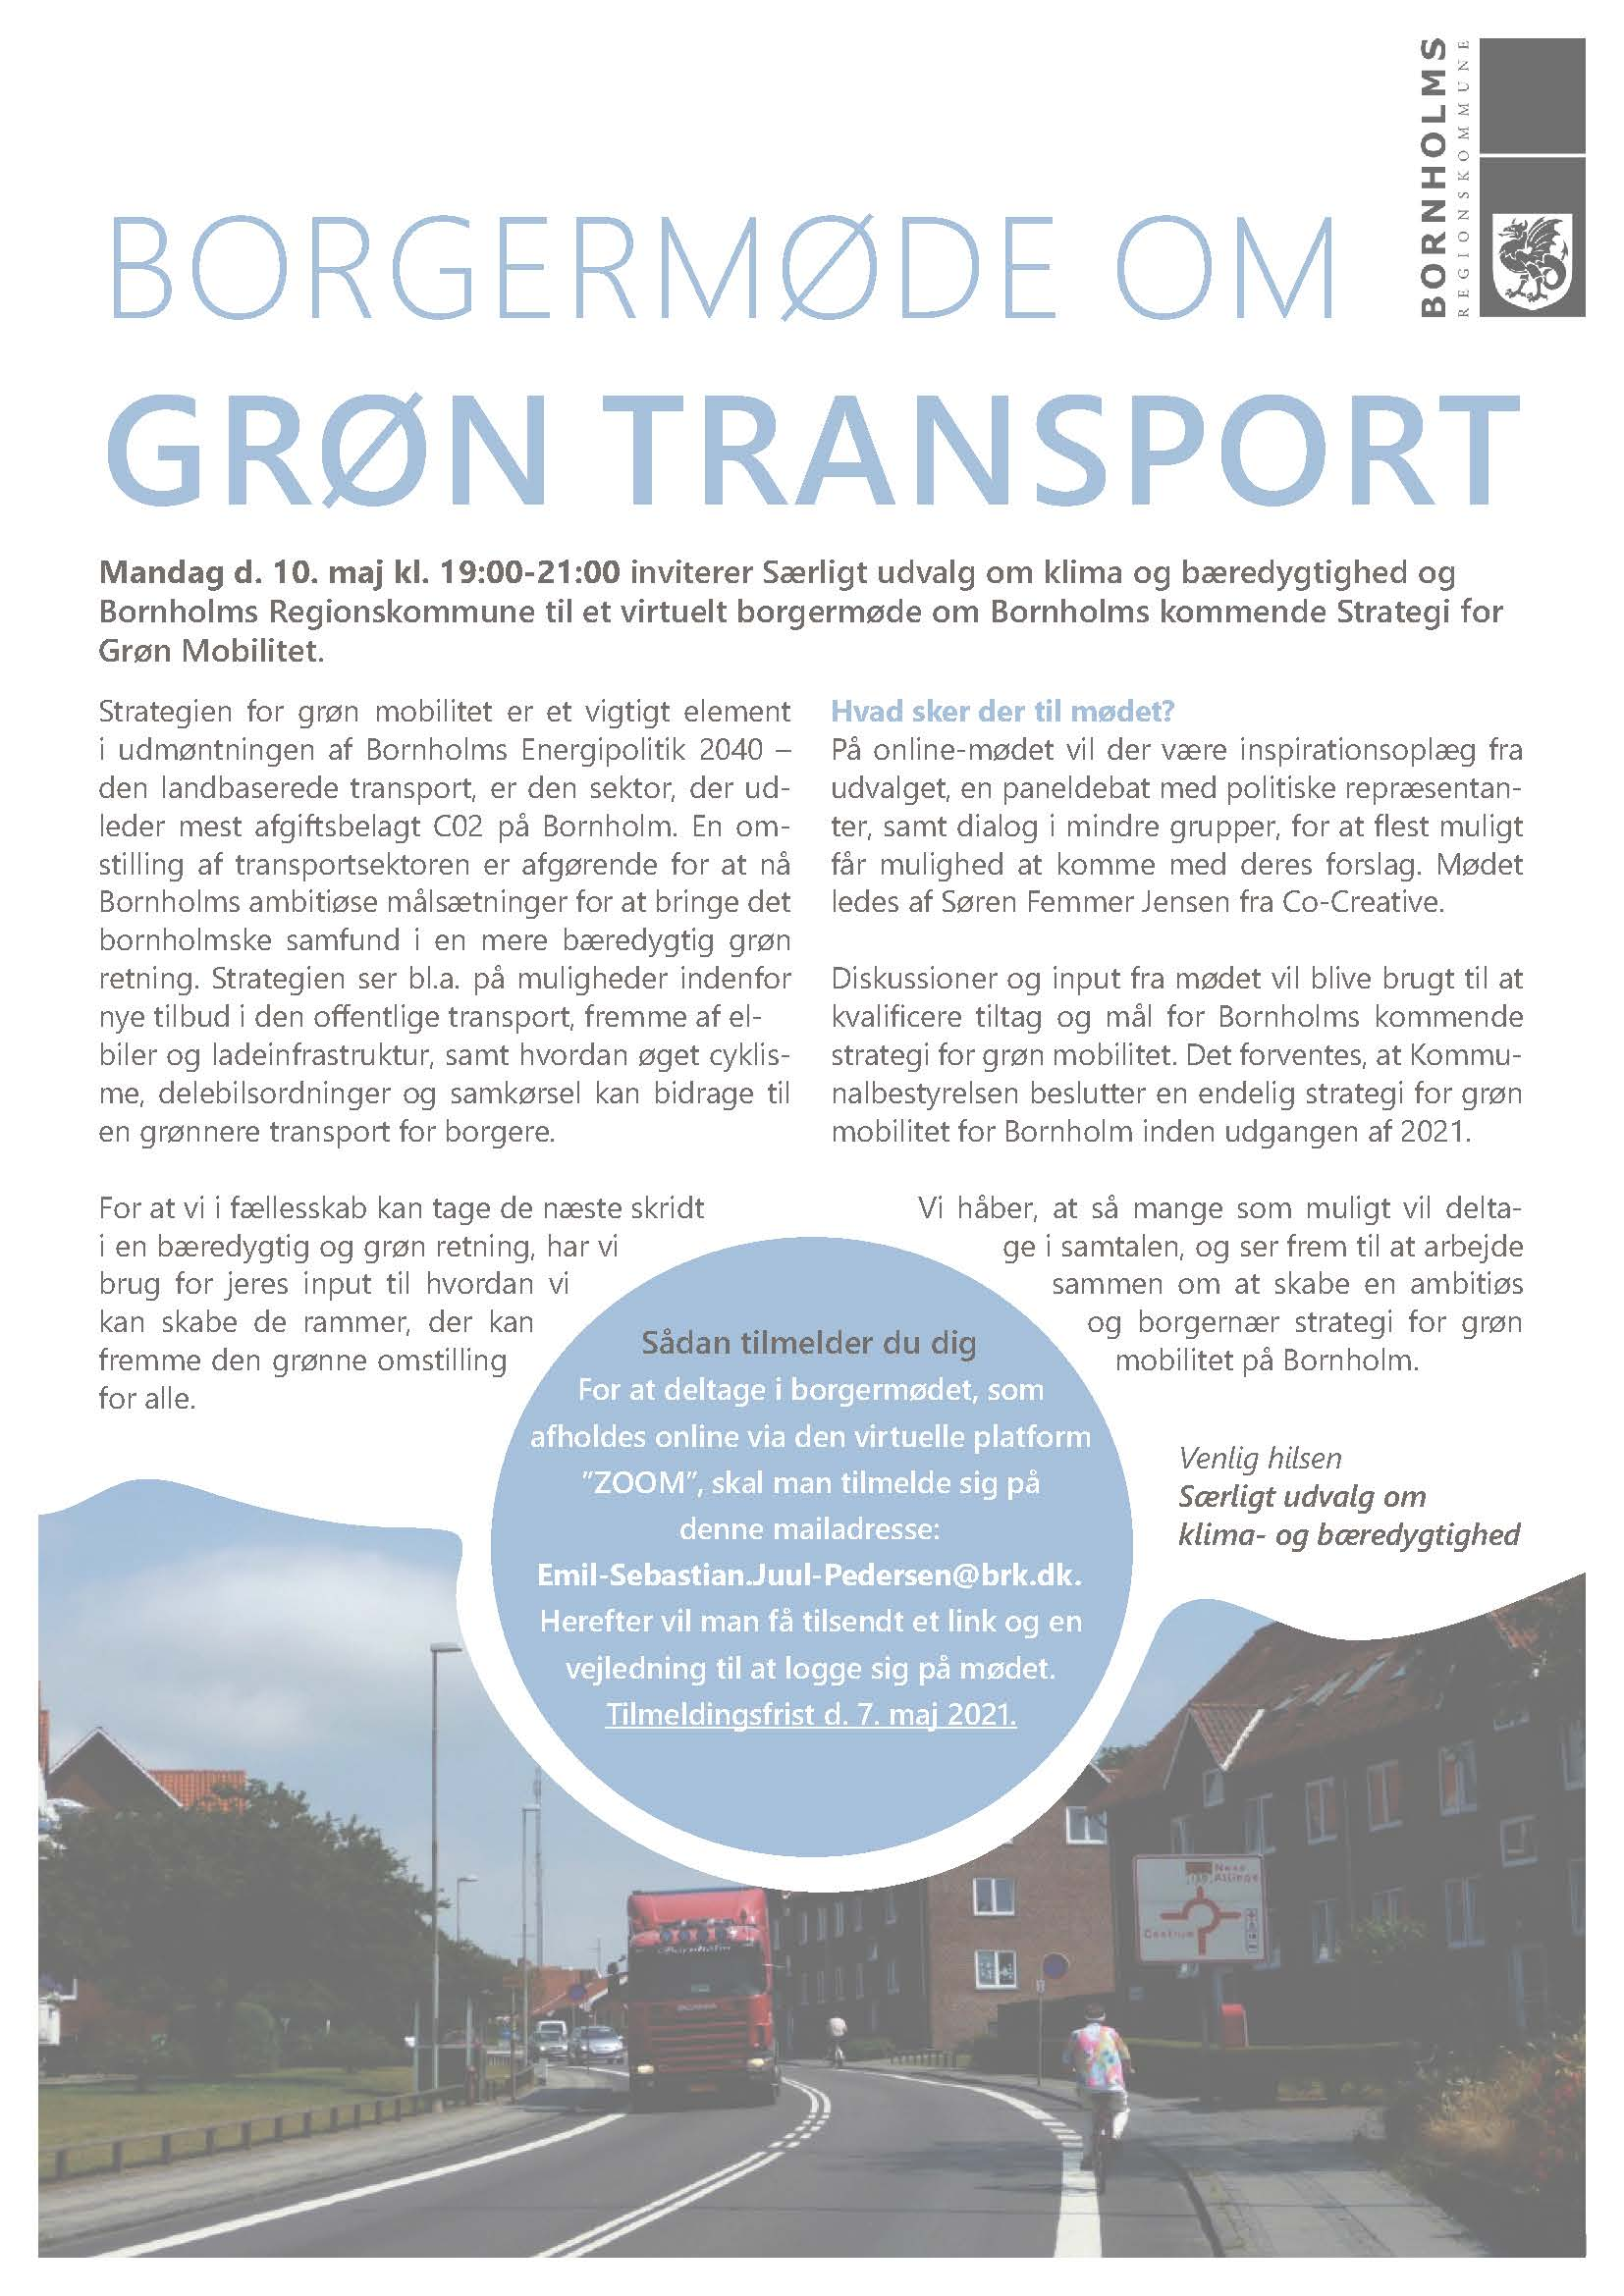 Borgermøde om Grøn Transport INVITATION.jpg